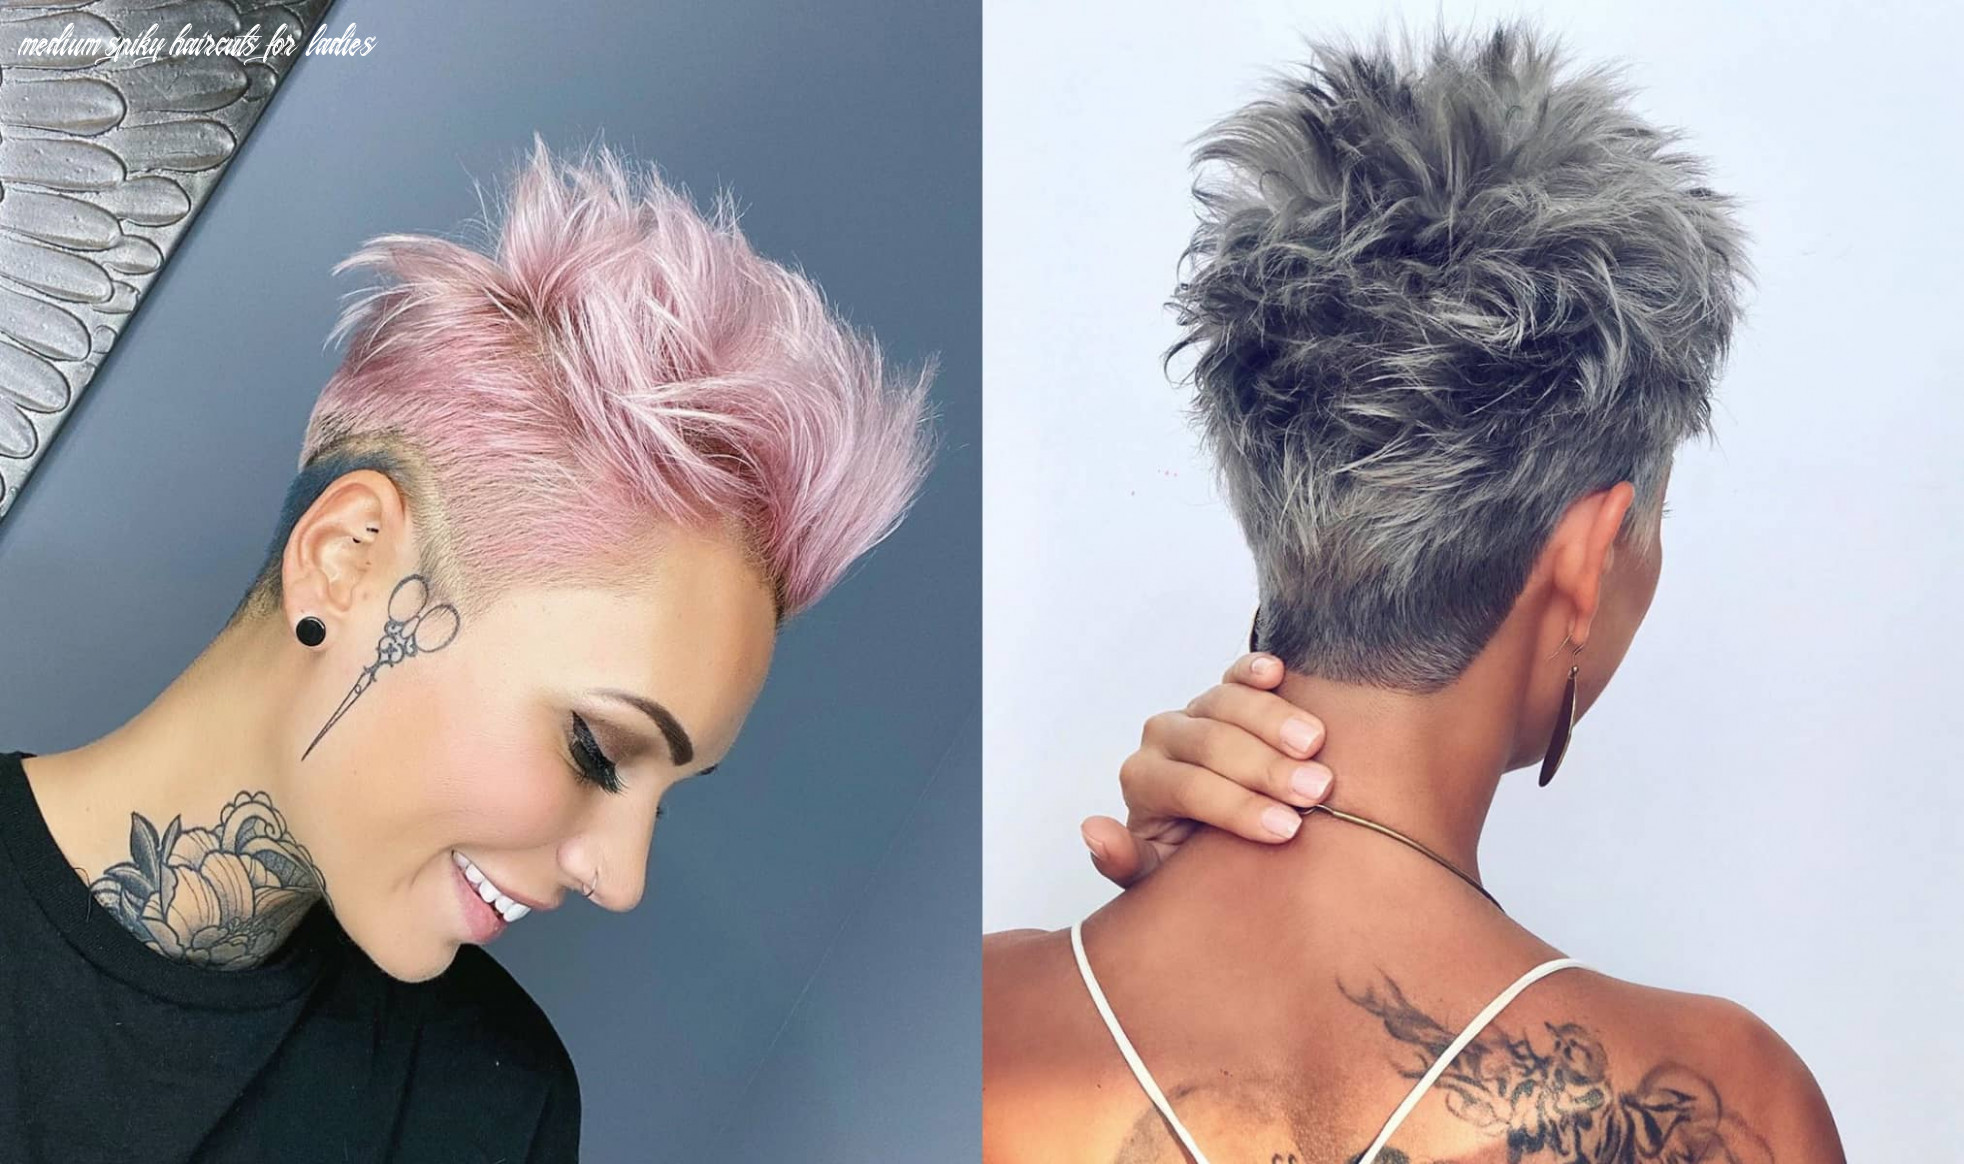 12 short spiky haircuts for women | stylesrant medium spiky haircuts for ladies